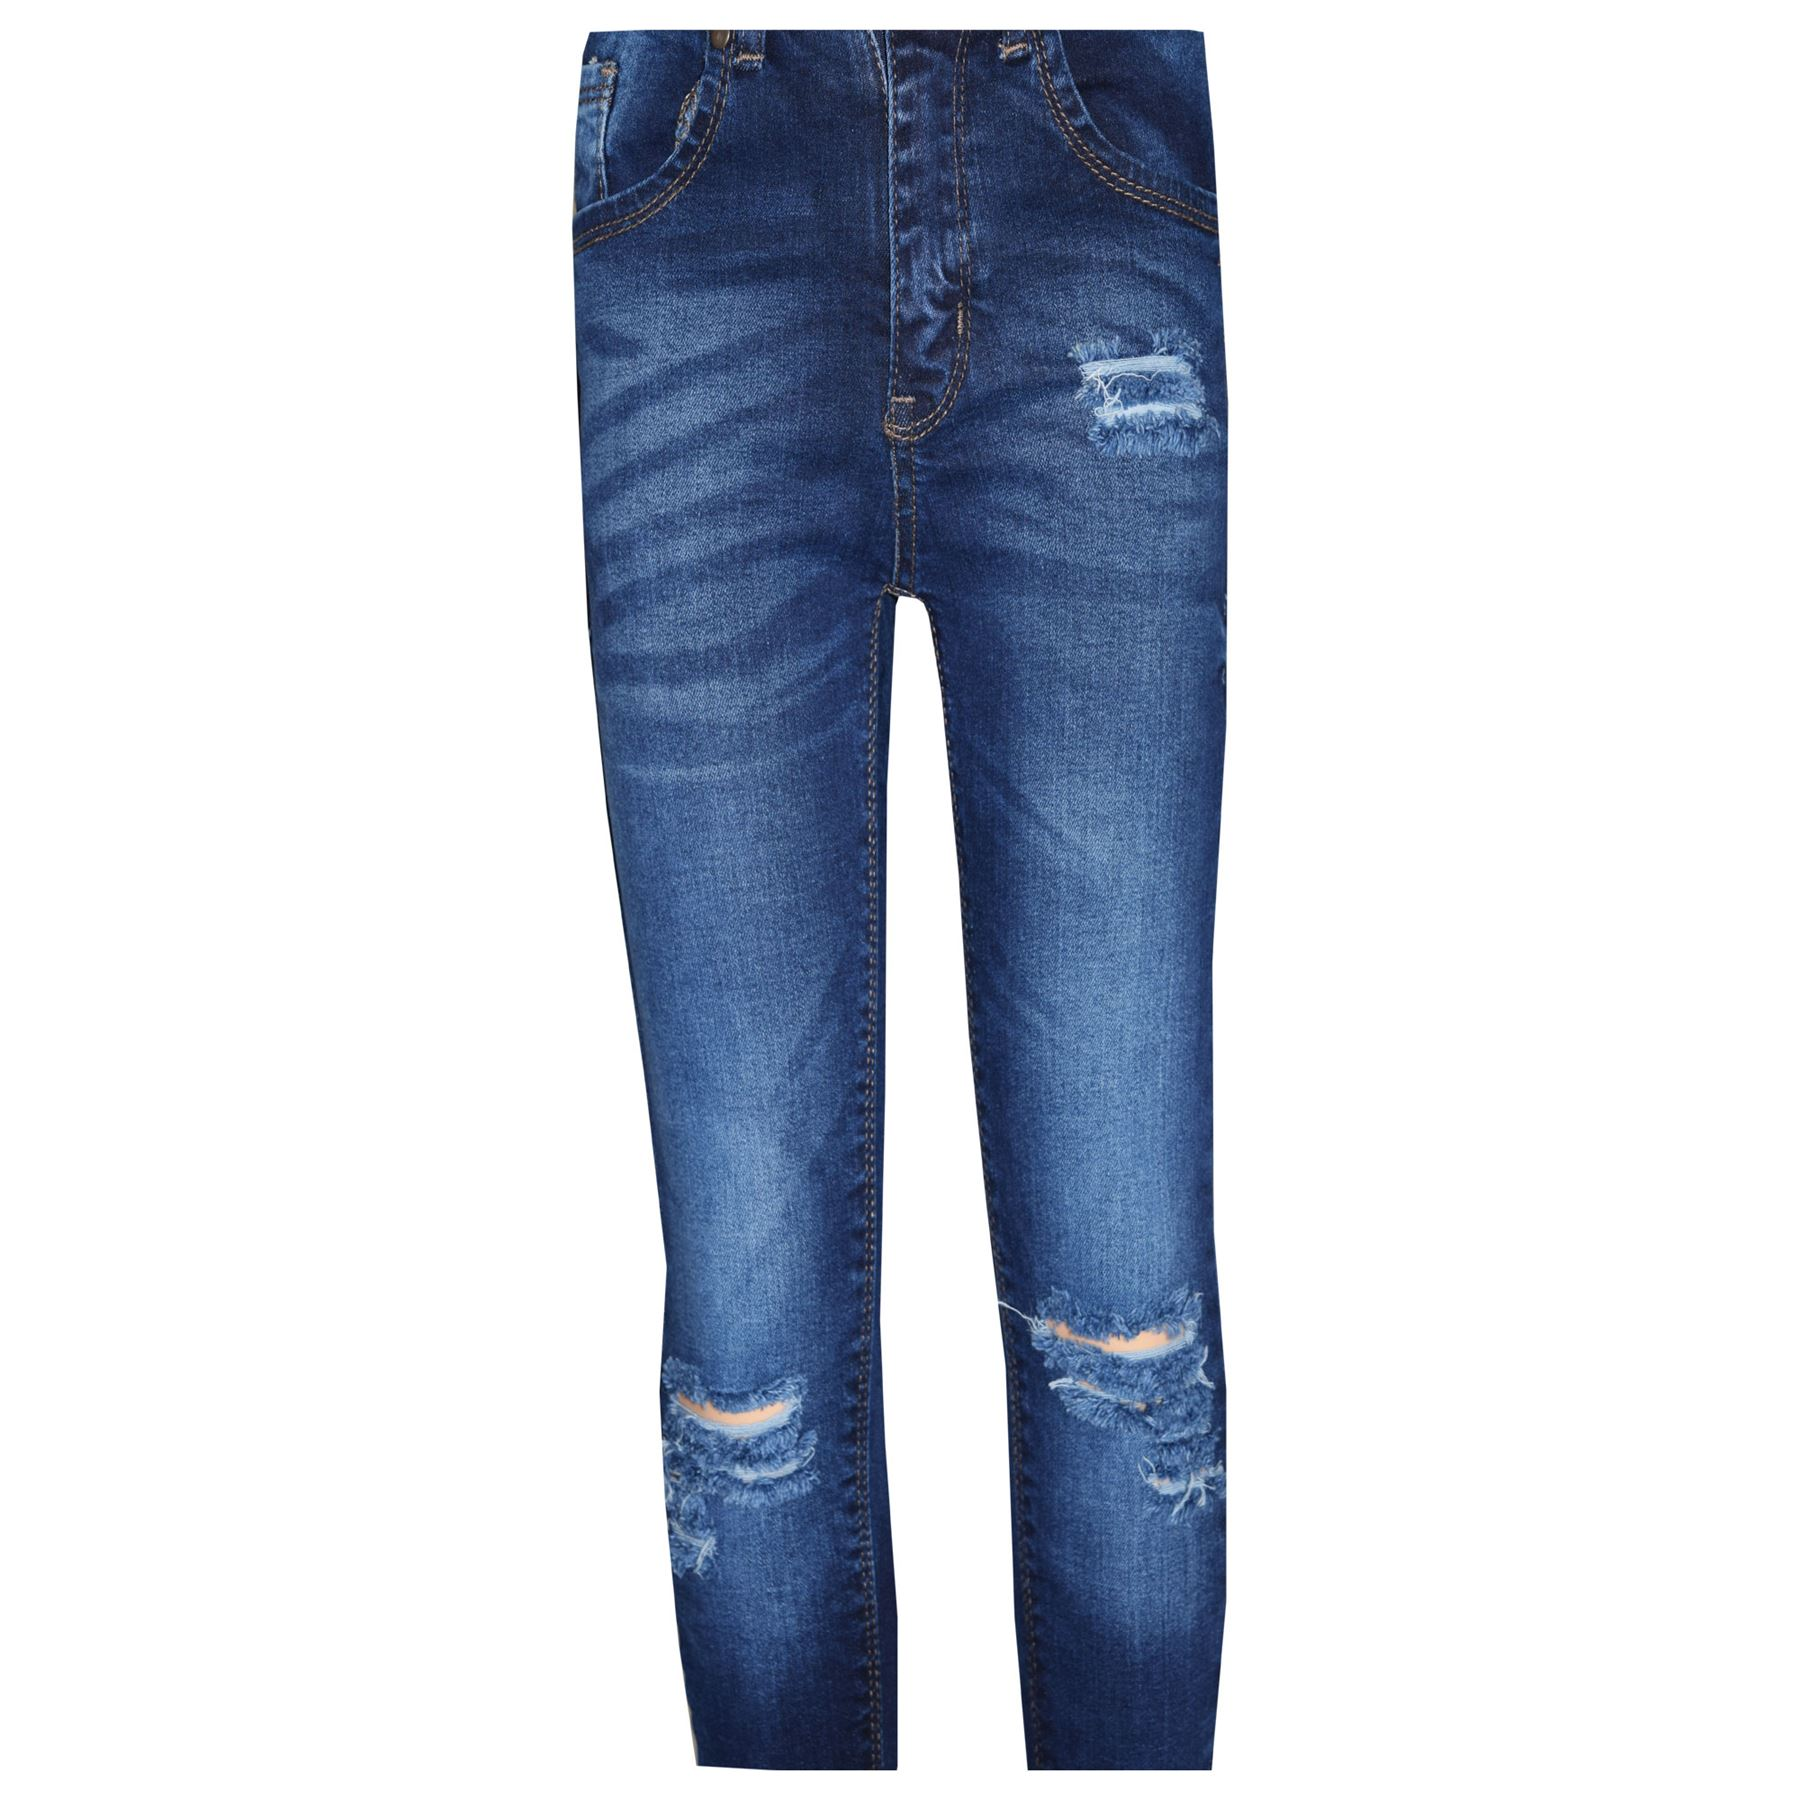 b980126a921 Girls Stretchy Jeans Kids Blue Denim Ripped Pants Frayed Trousers ...